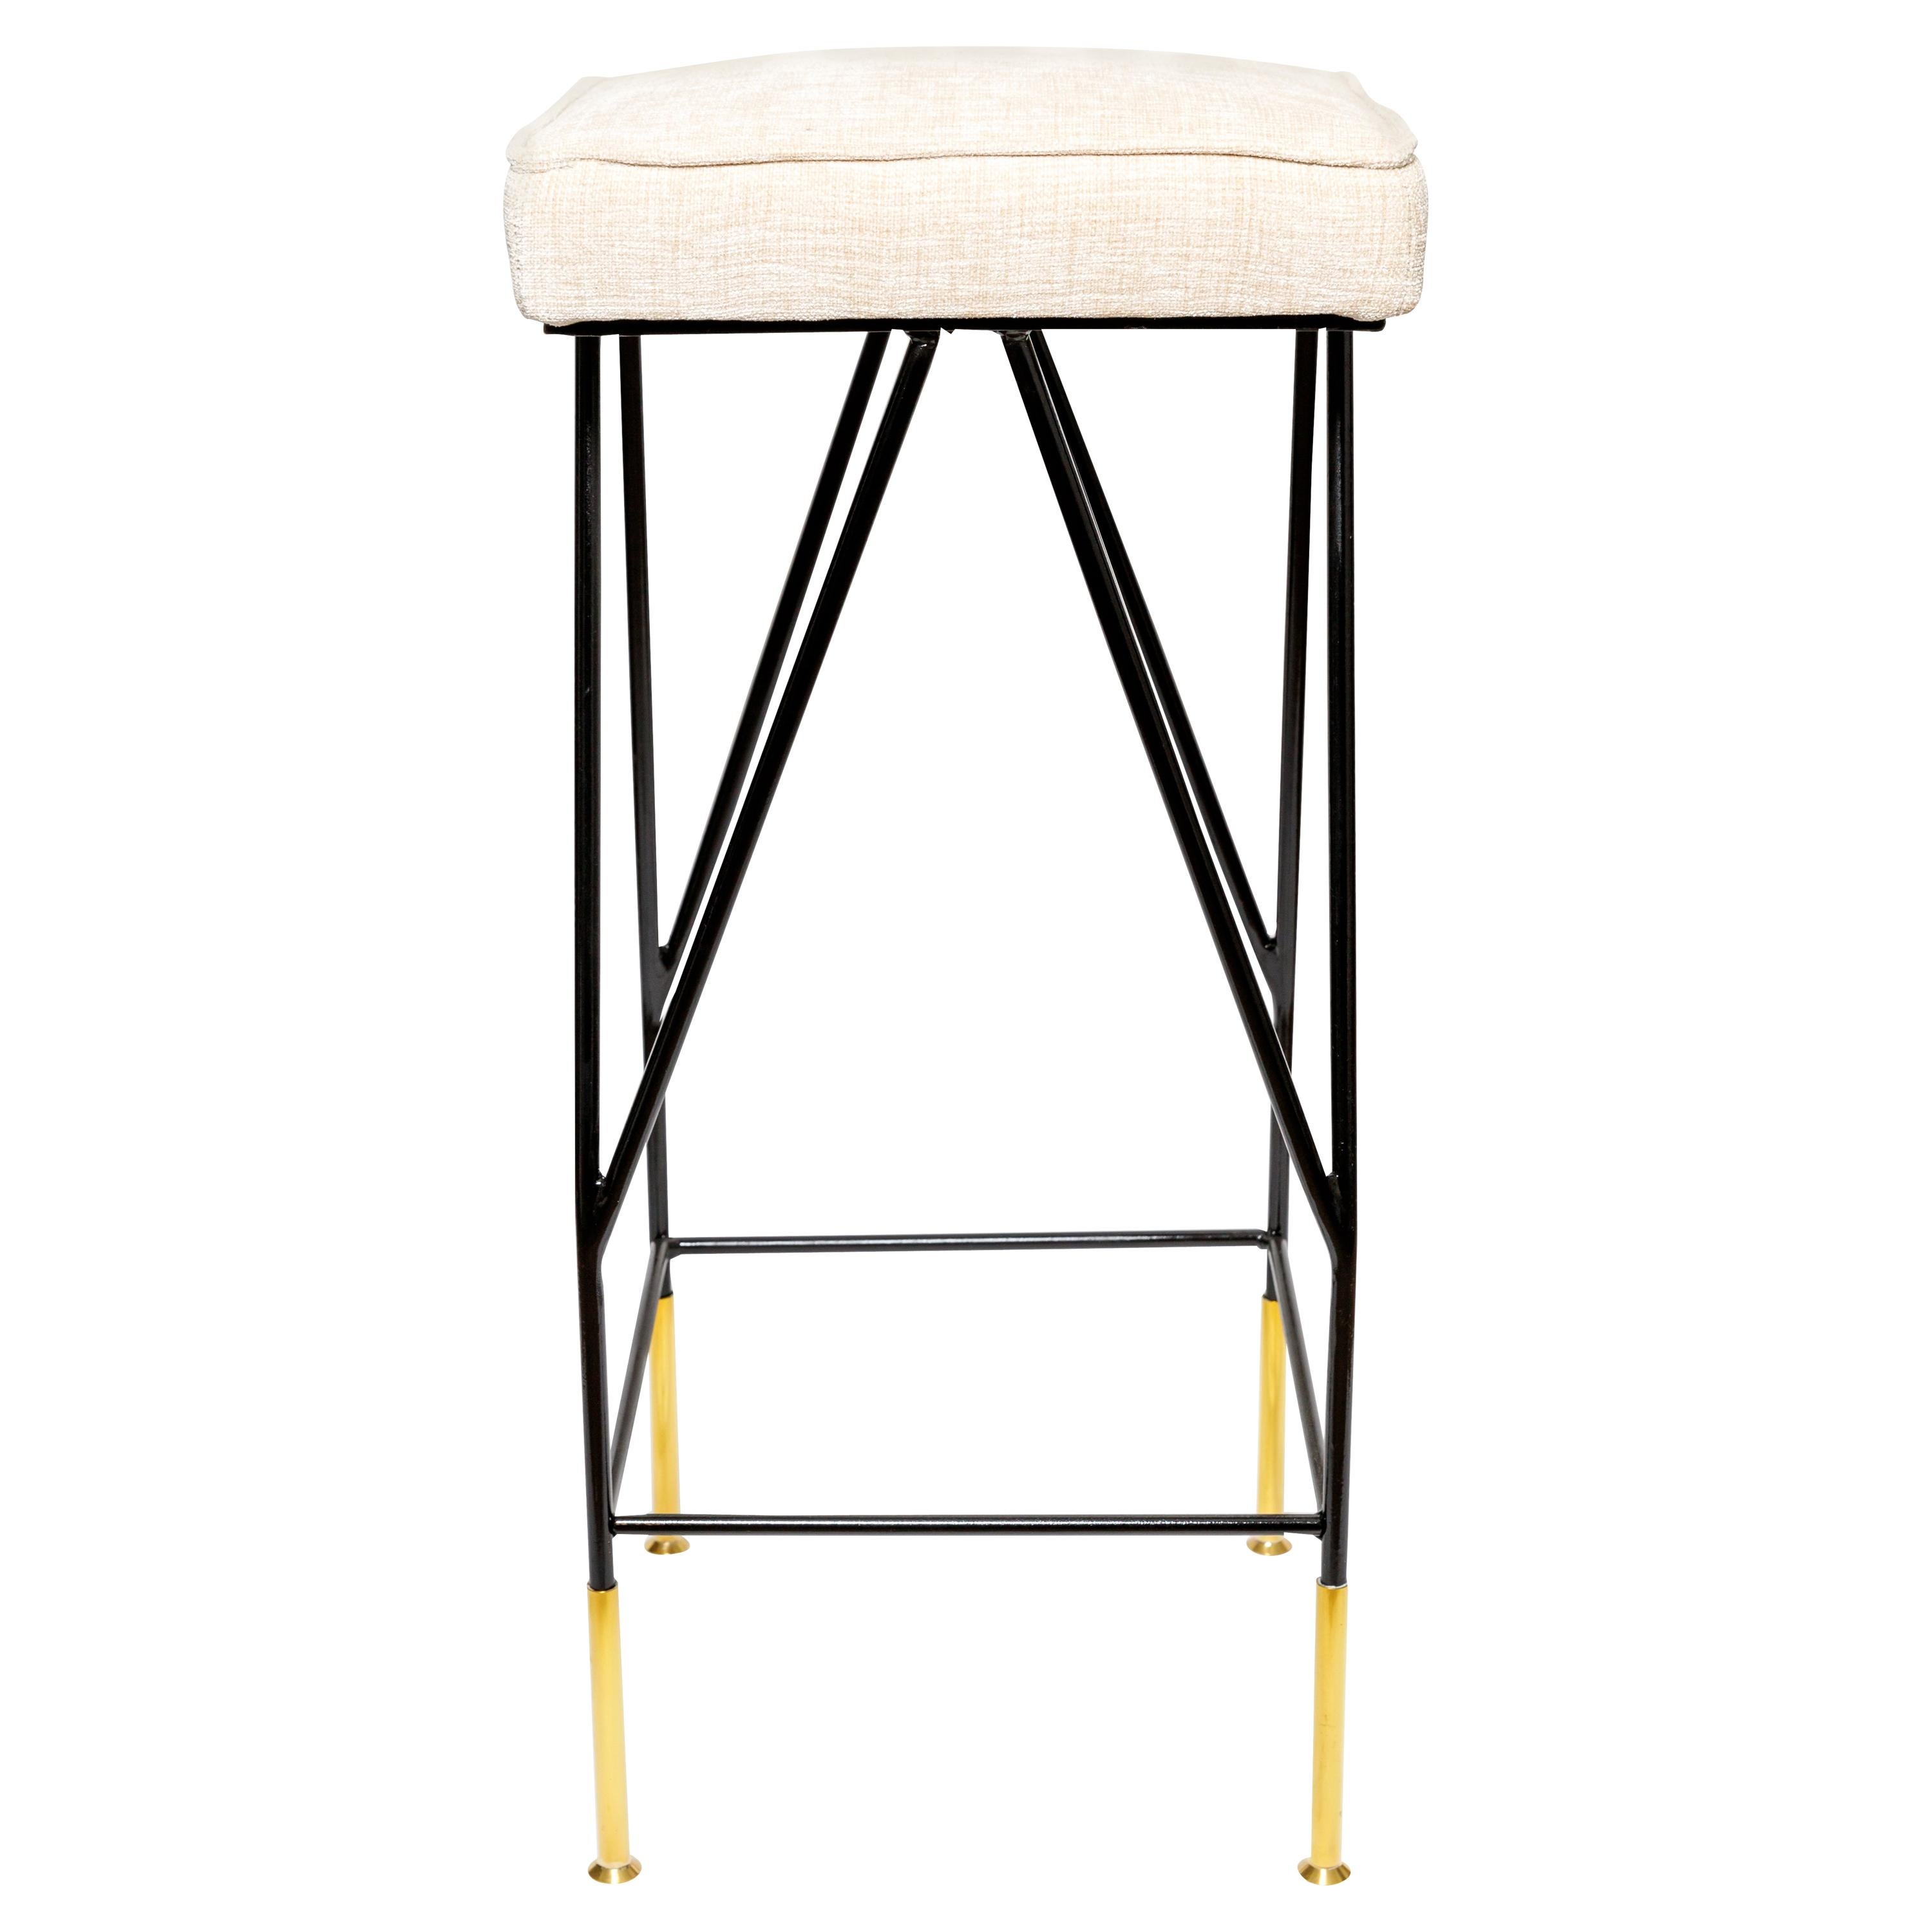 Upholstered Enameled Iron Bar Stools with Brass Details